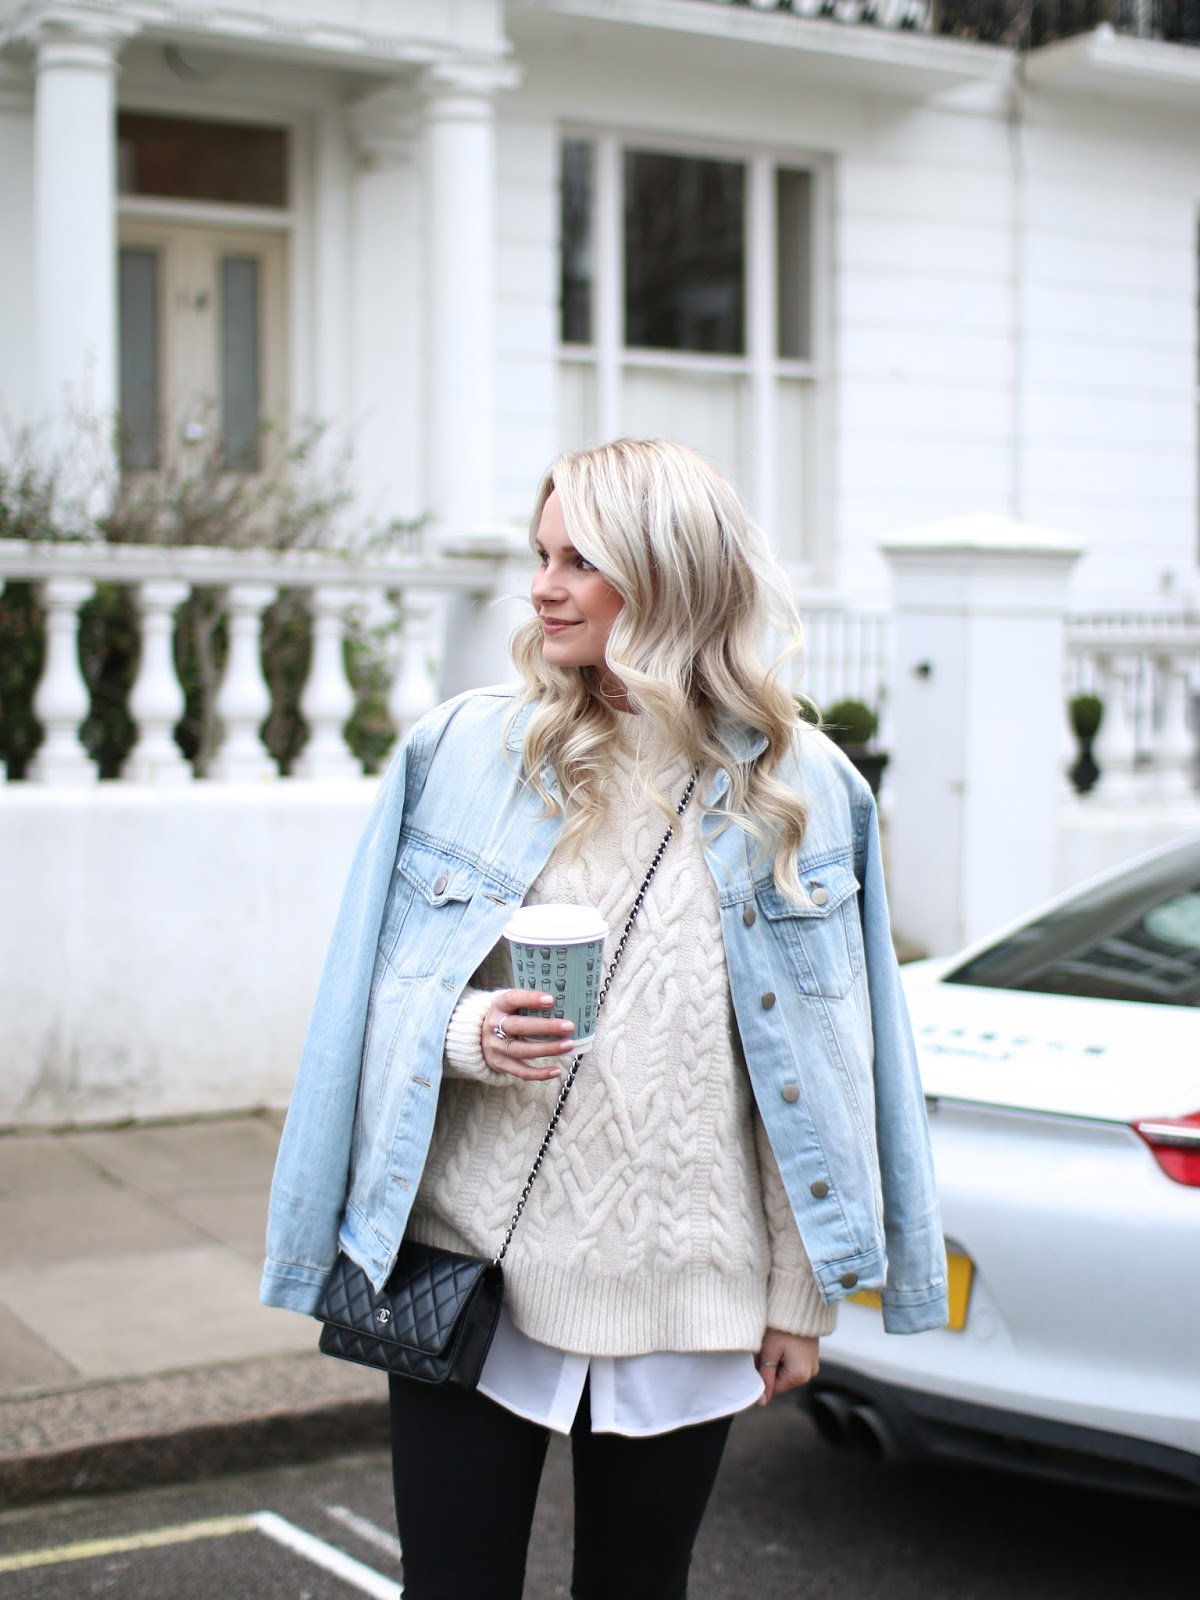 a blonde blogger wearing vintage style denim jacket and cable knit sweater in notting hill at sunset